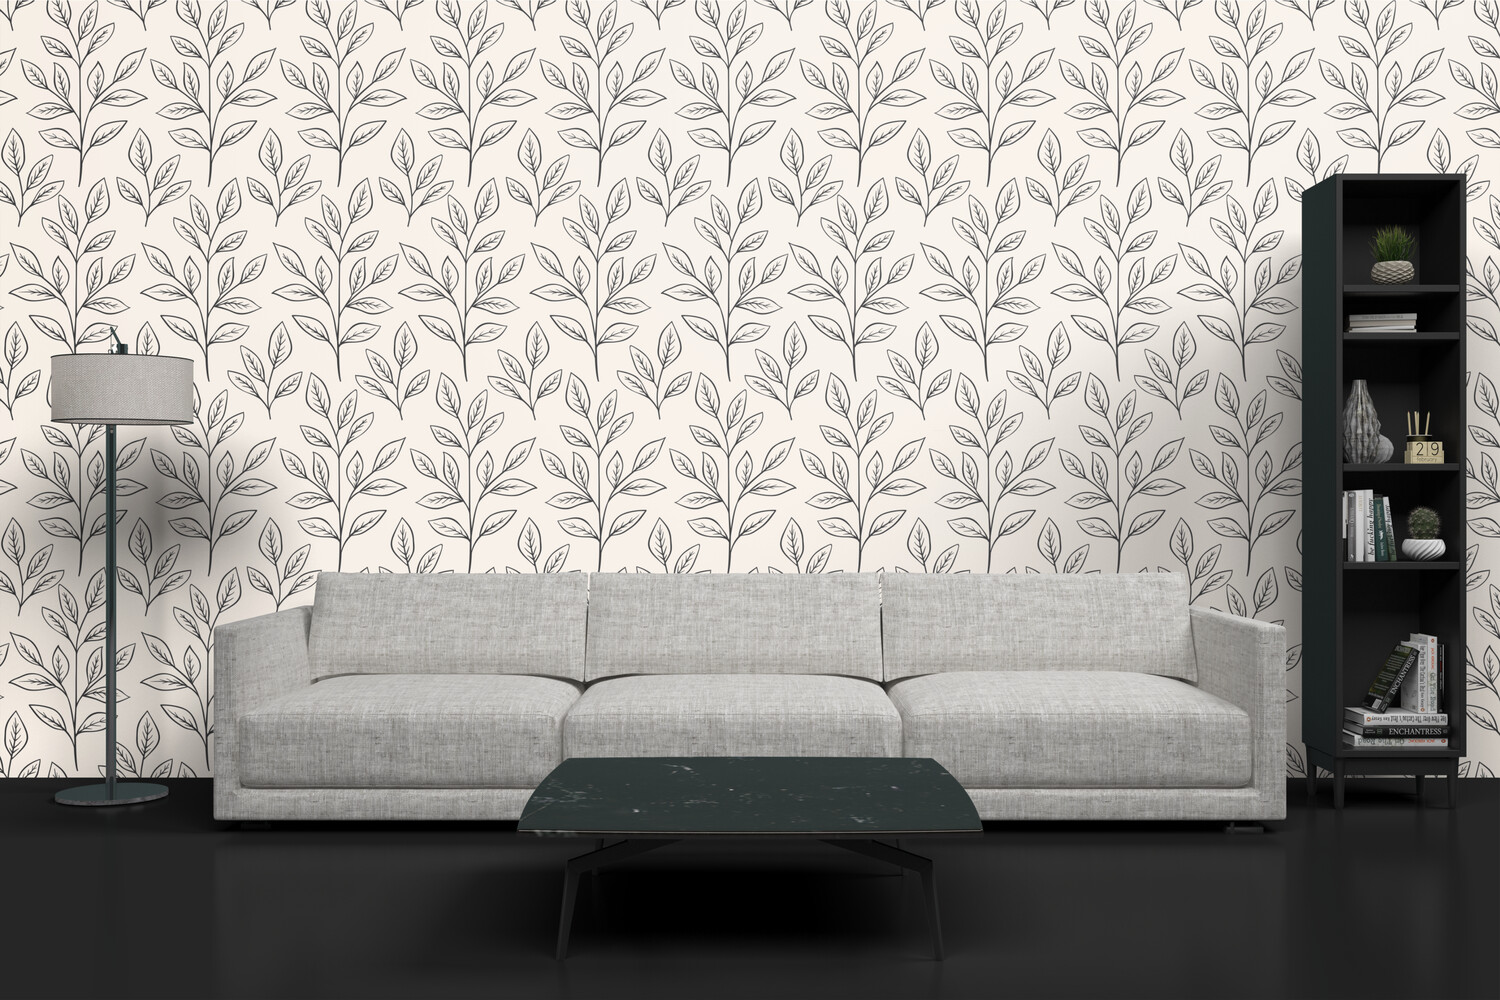 NEUTRAL FOLIAGE | Vinyl Wall Wrap for Any Room | Removable Vinyl Wallpaper